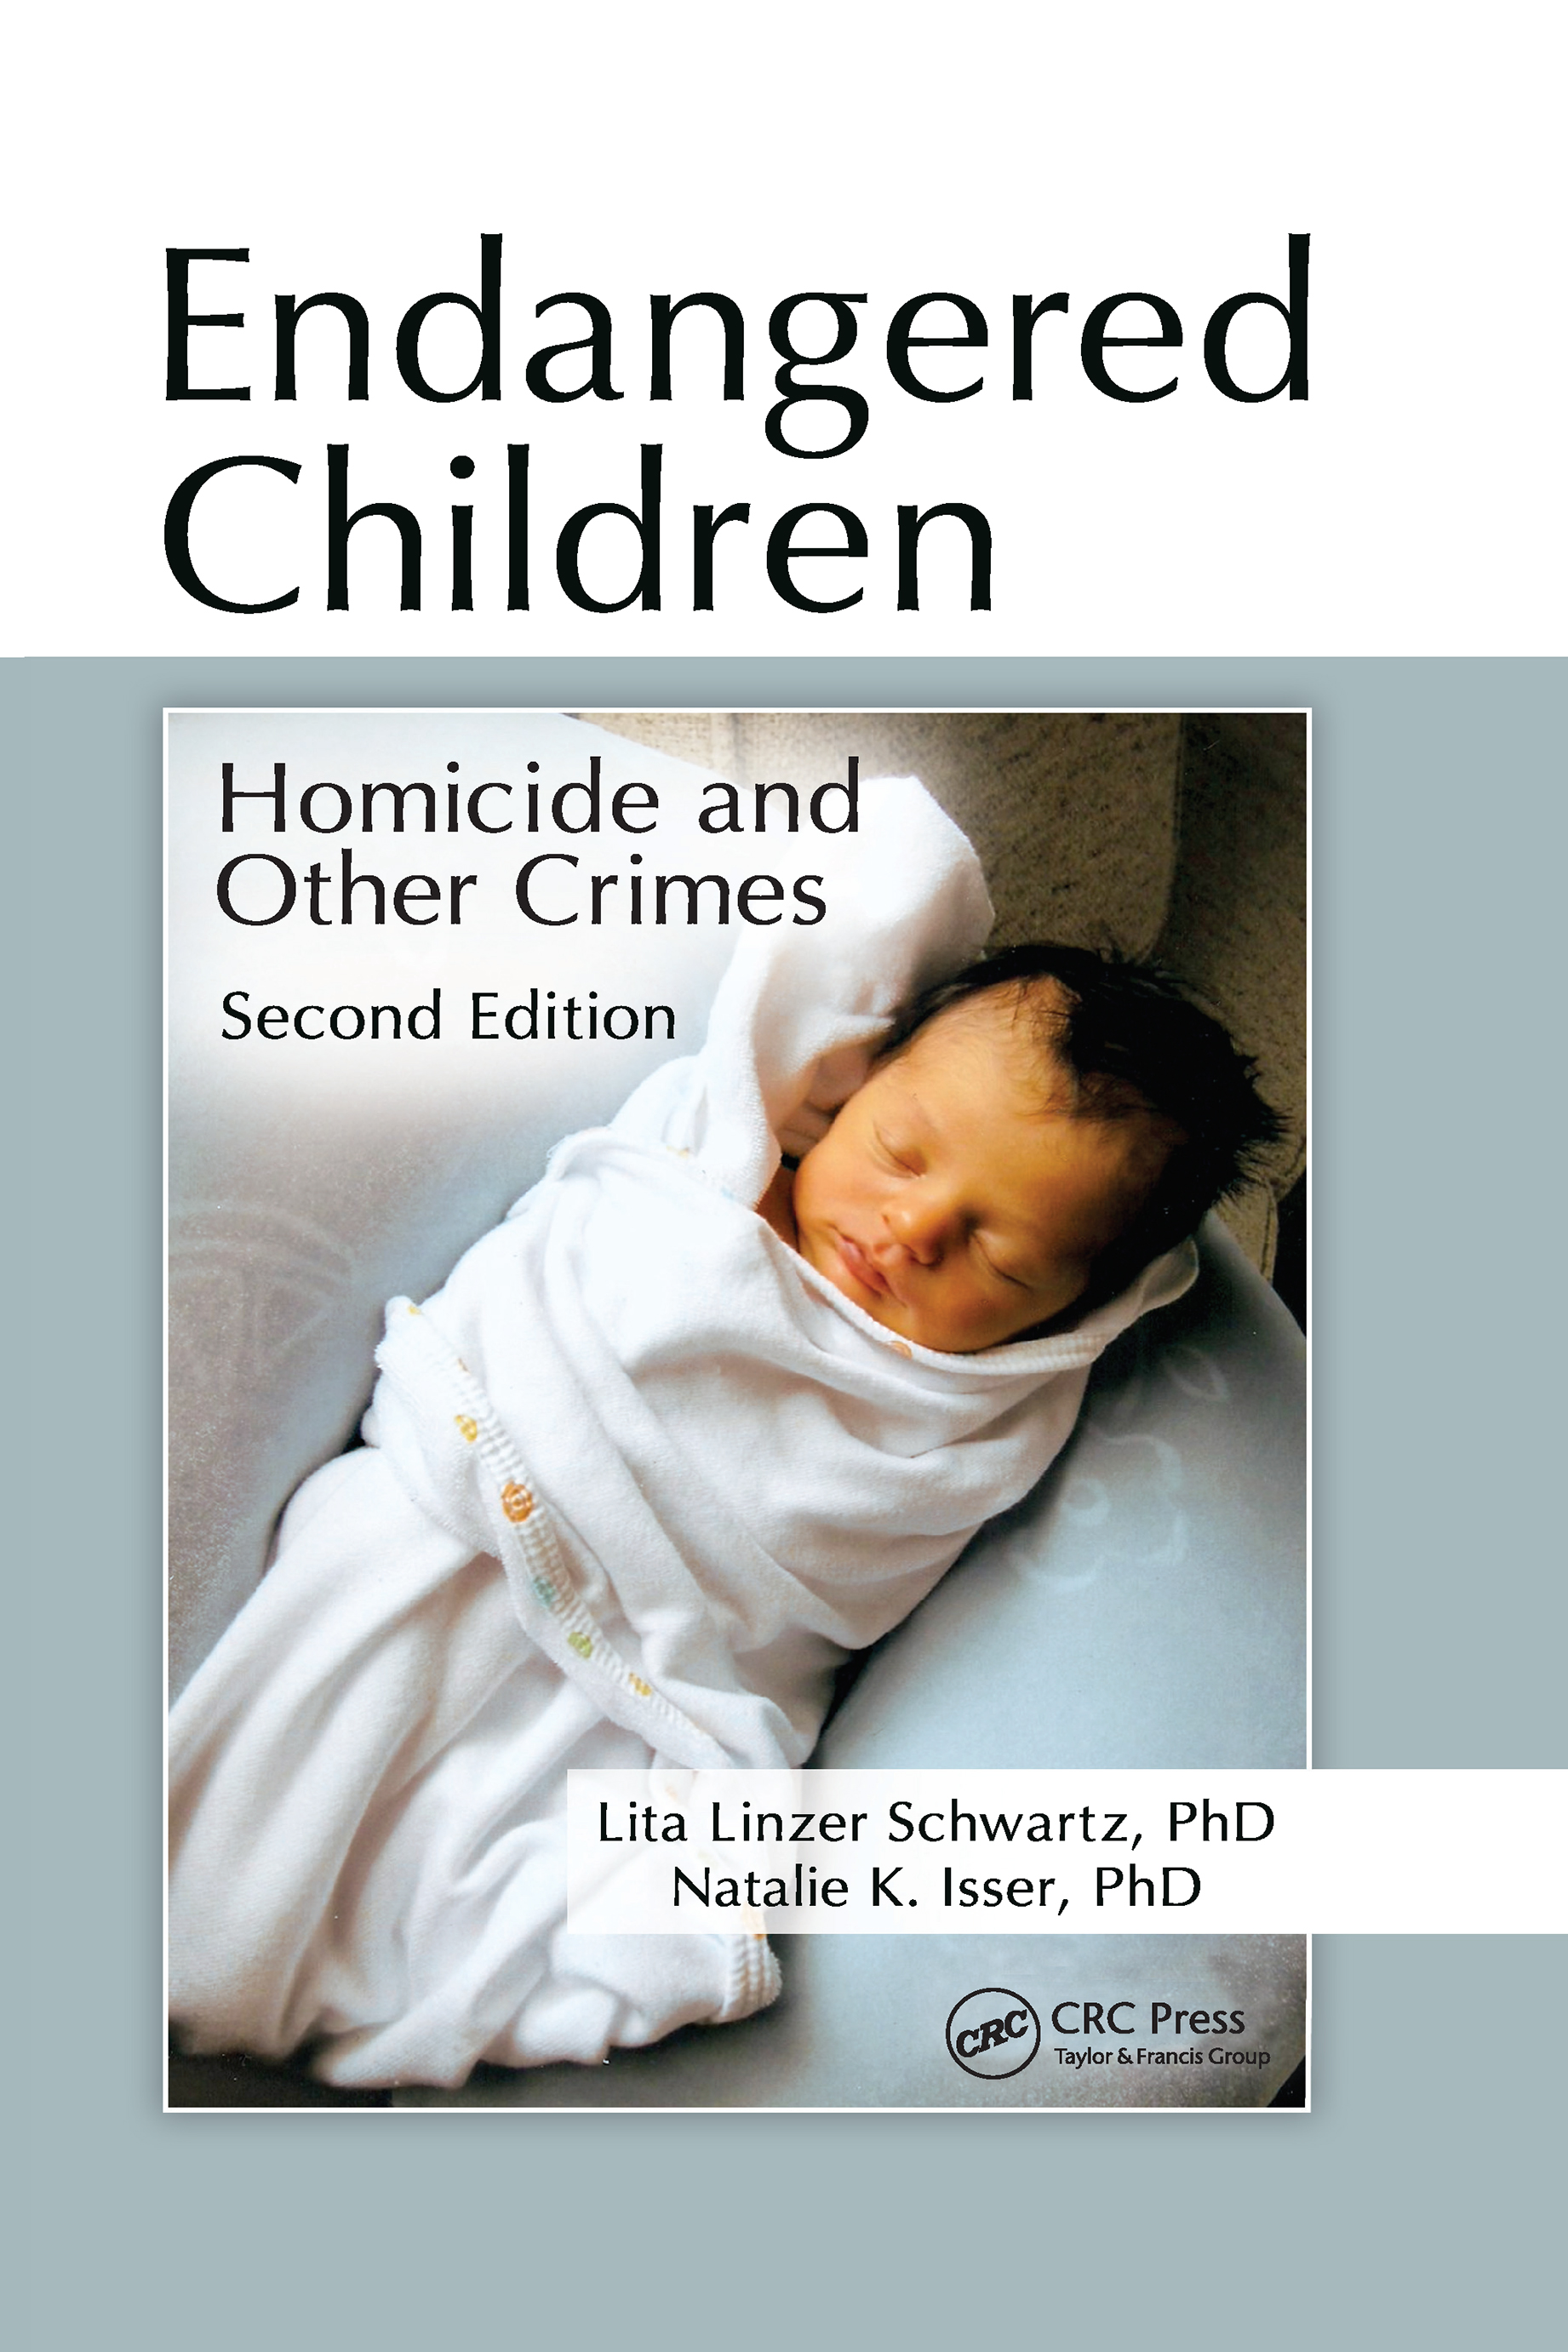 Endangered Children: Homicide and Other Crimes, Second Edition book cover